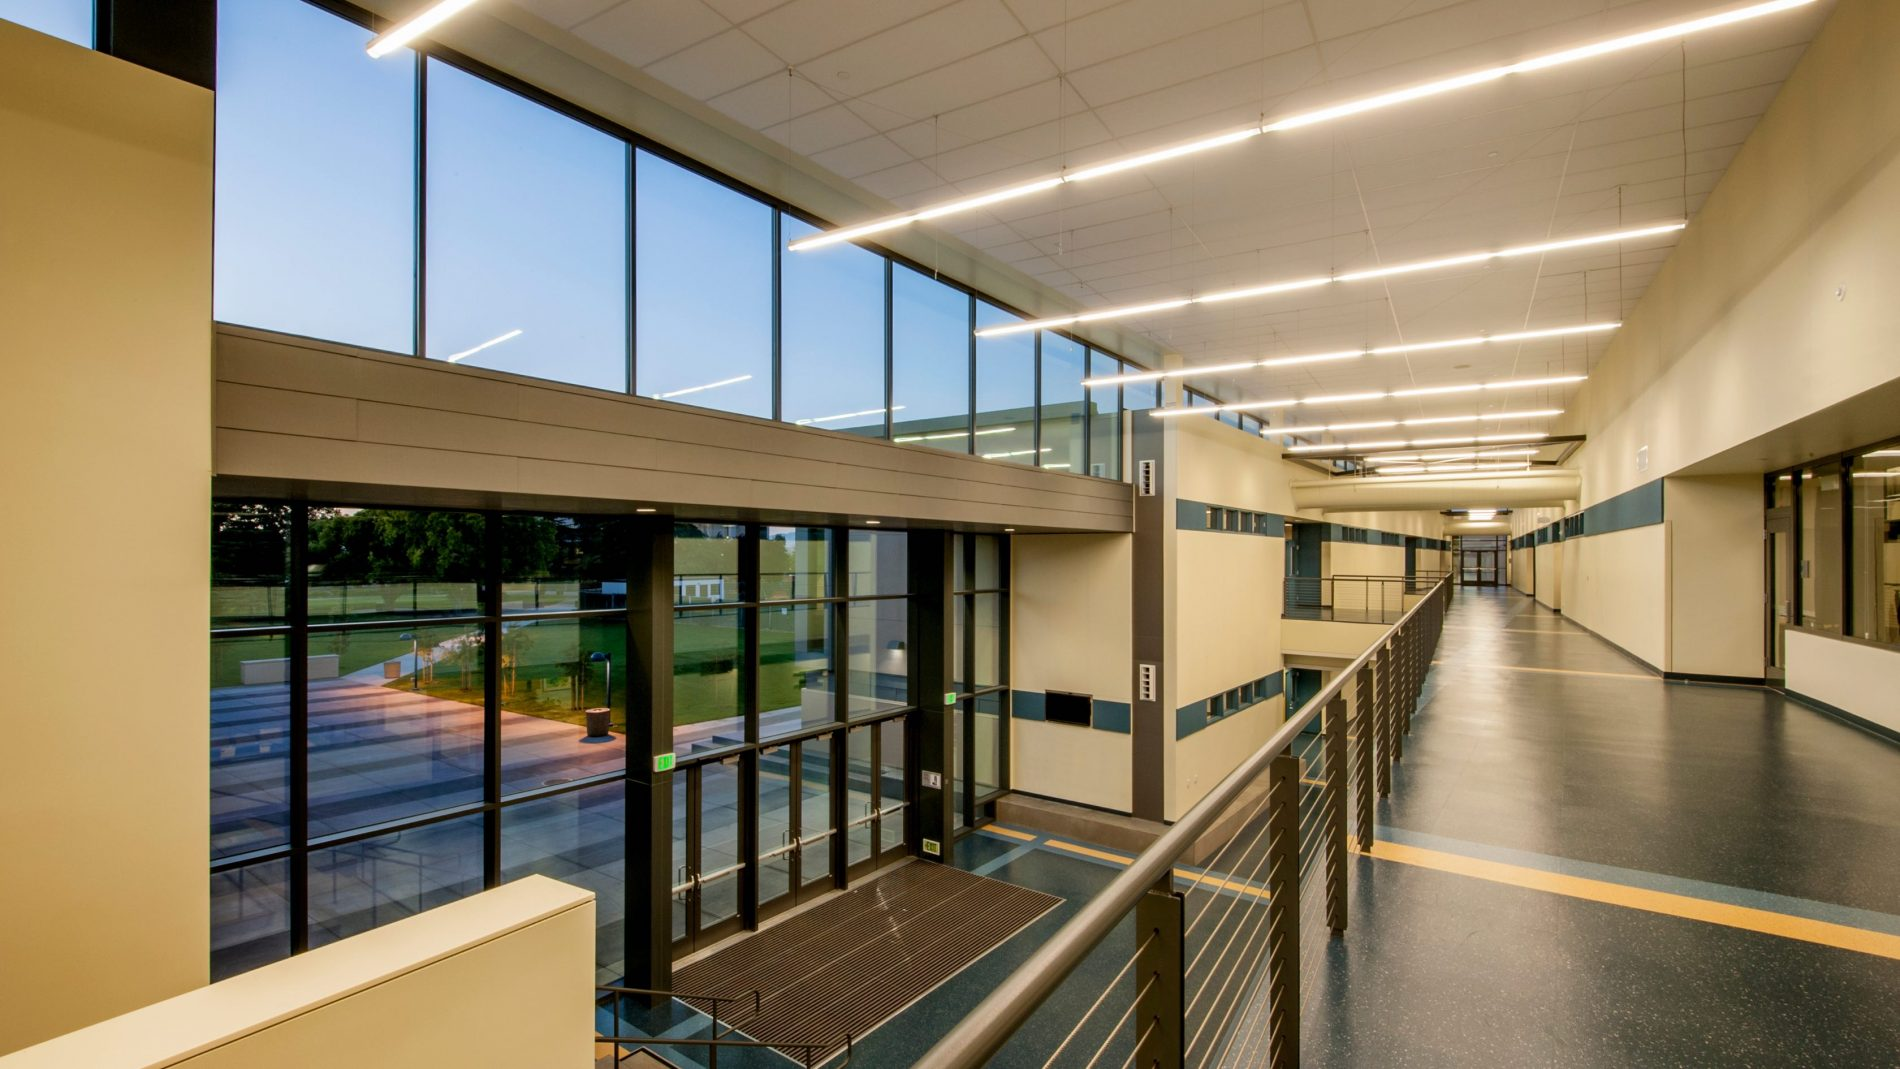 School Security Upgrades Addressed By Campus Security Magazine - Safety and Security Window Film in Buffalo, New York